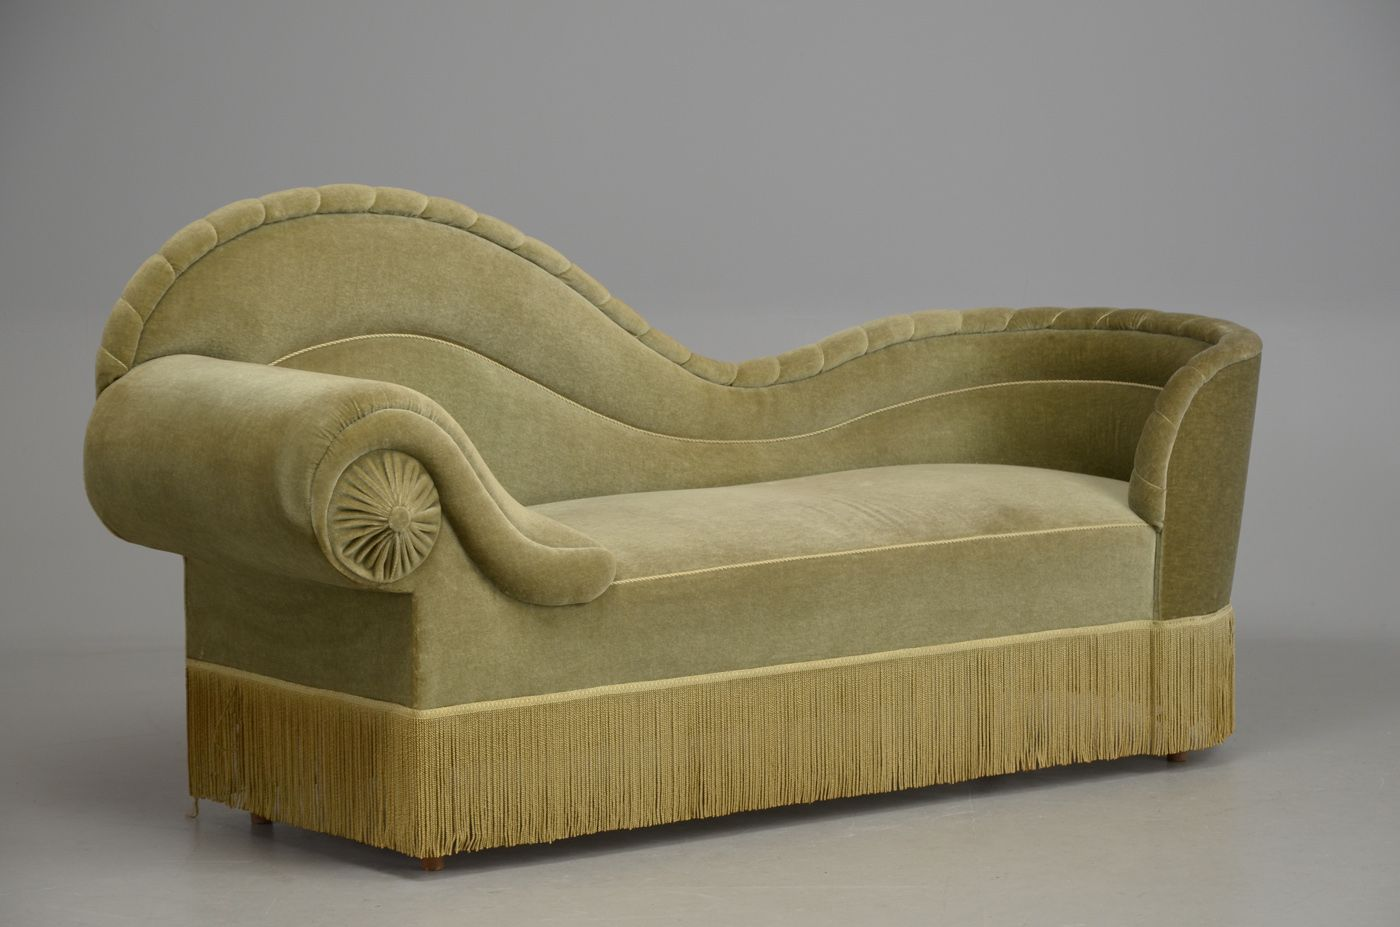 Chaise lounge upholstered in green velvet. Not exactly digging the ...